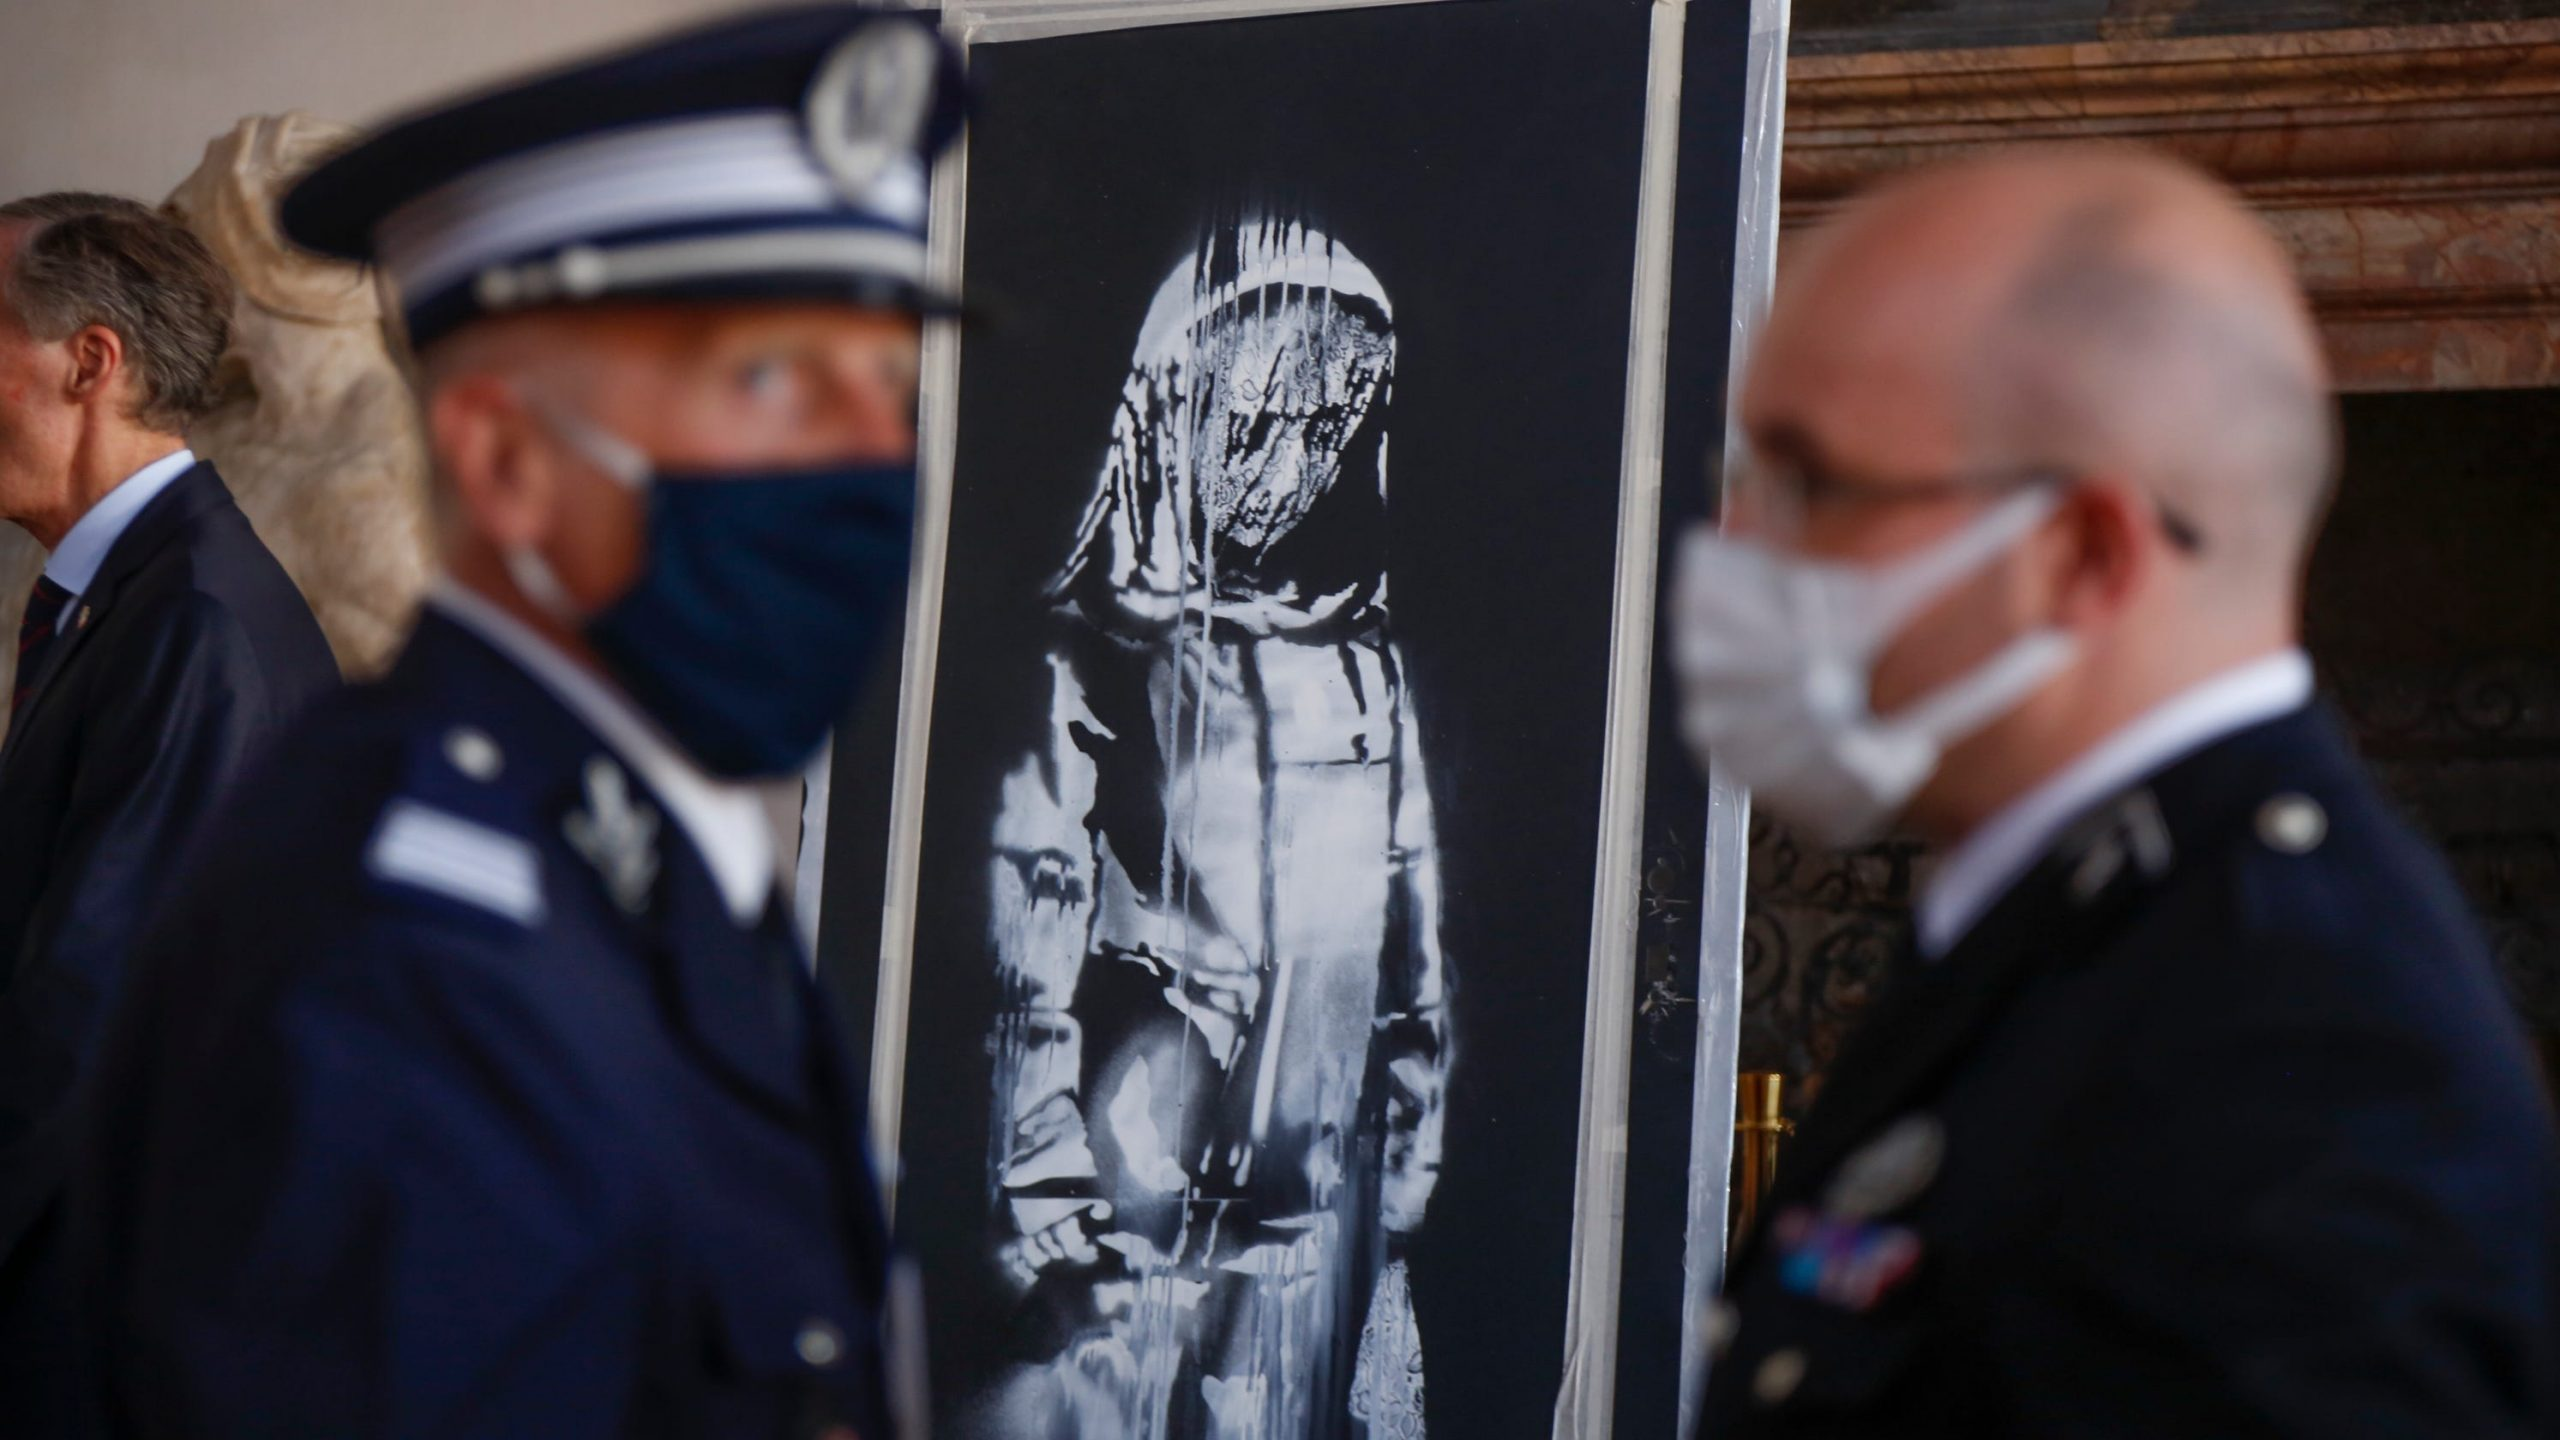 Banksy tags experience mask avenue artwork as Italy returns stolen get the job done to France